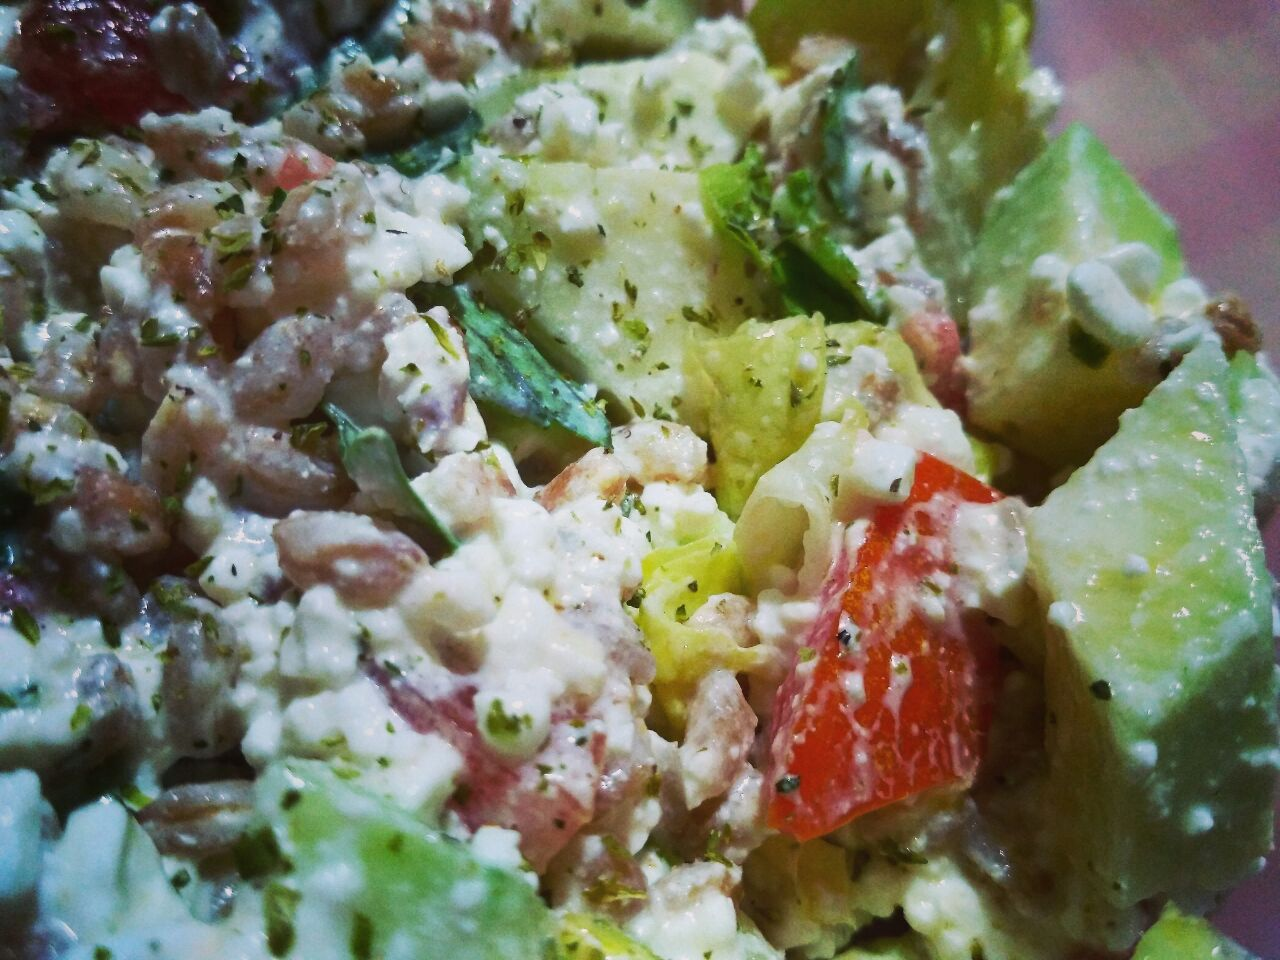 Farro perlato in insalata super light